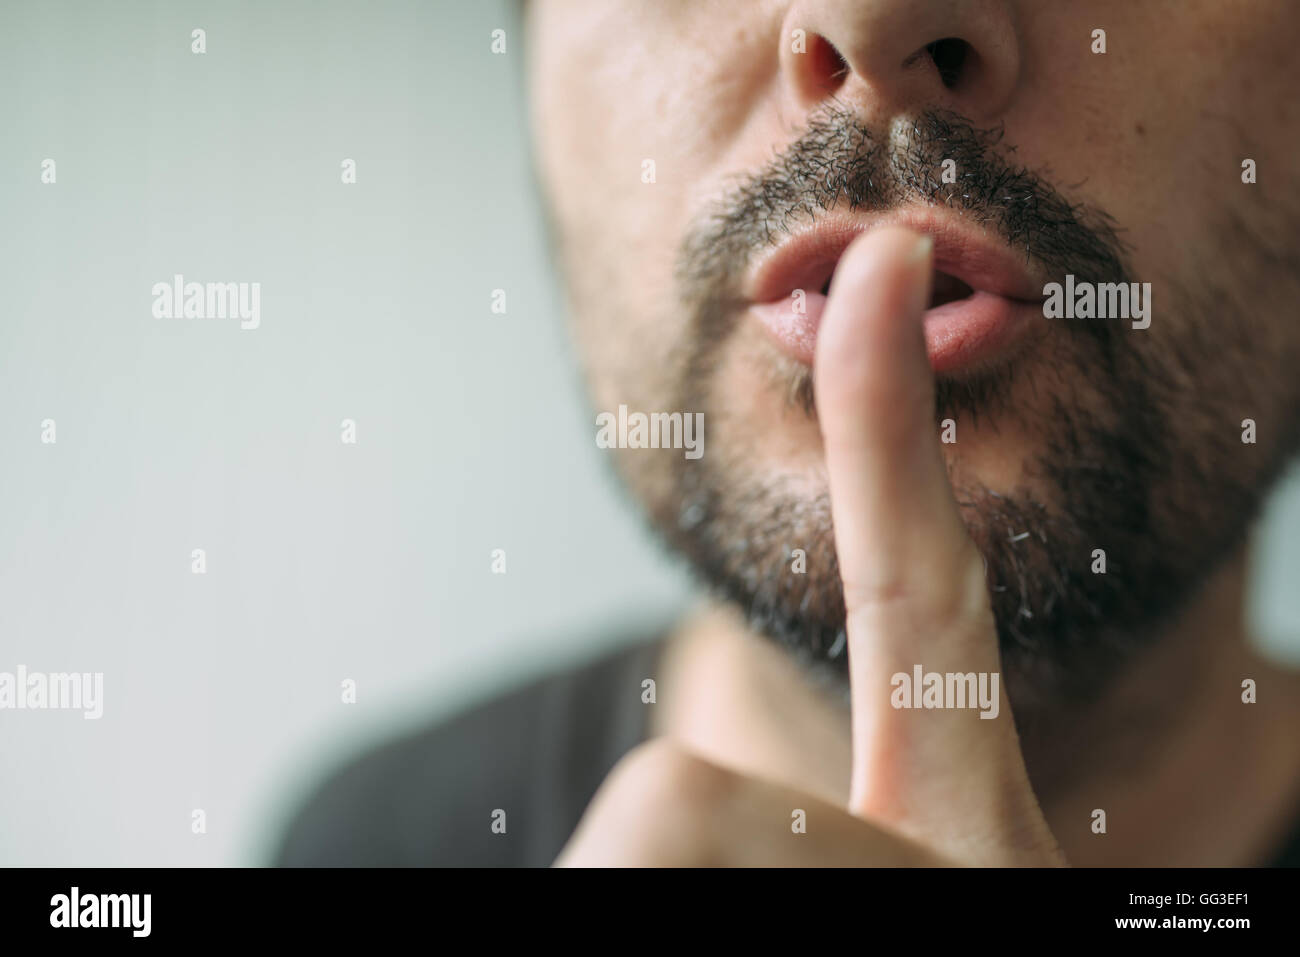 Finger on lips as man gesturing shhh sign, please be silent concept with selective focus - Stock Image